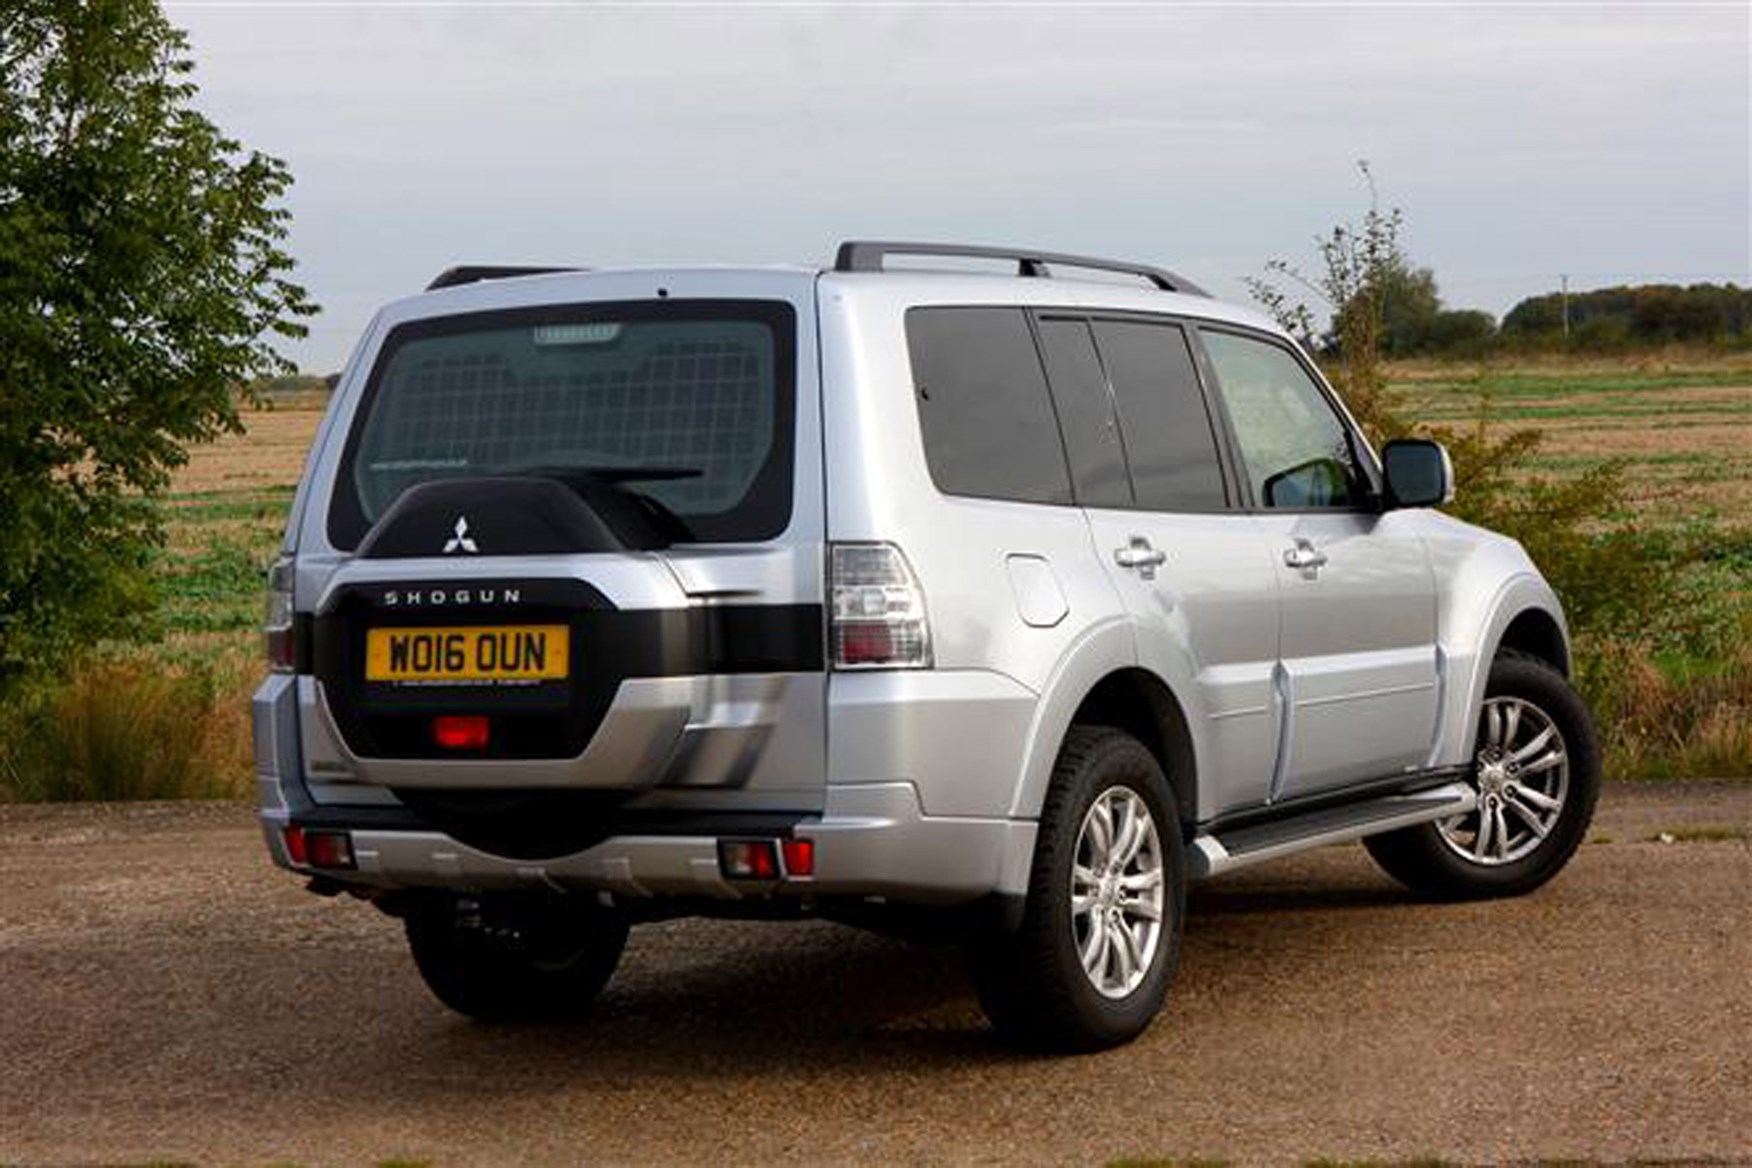 Mitsubishi Shogun review on Parkers Vans - rear exterior